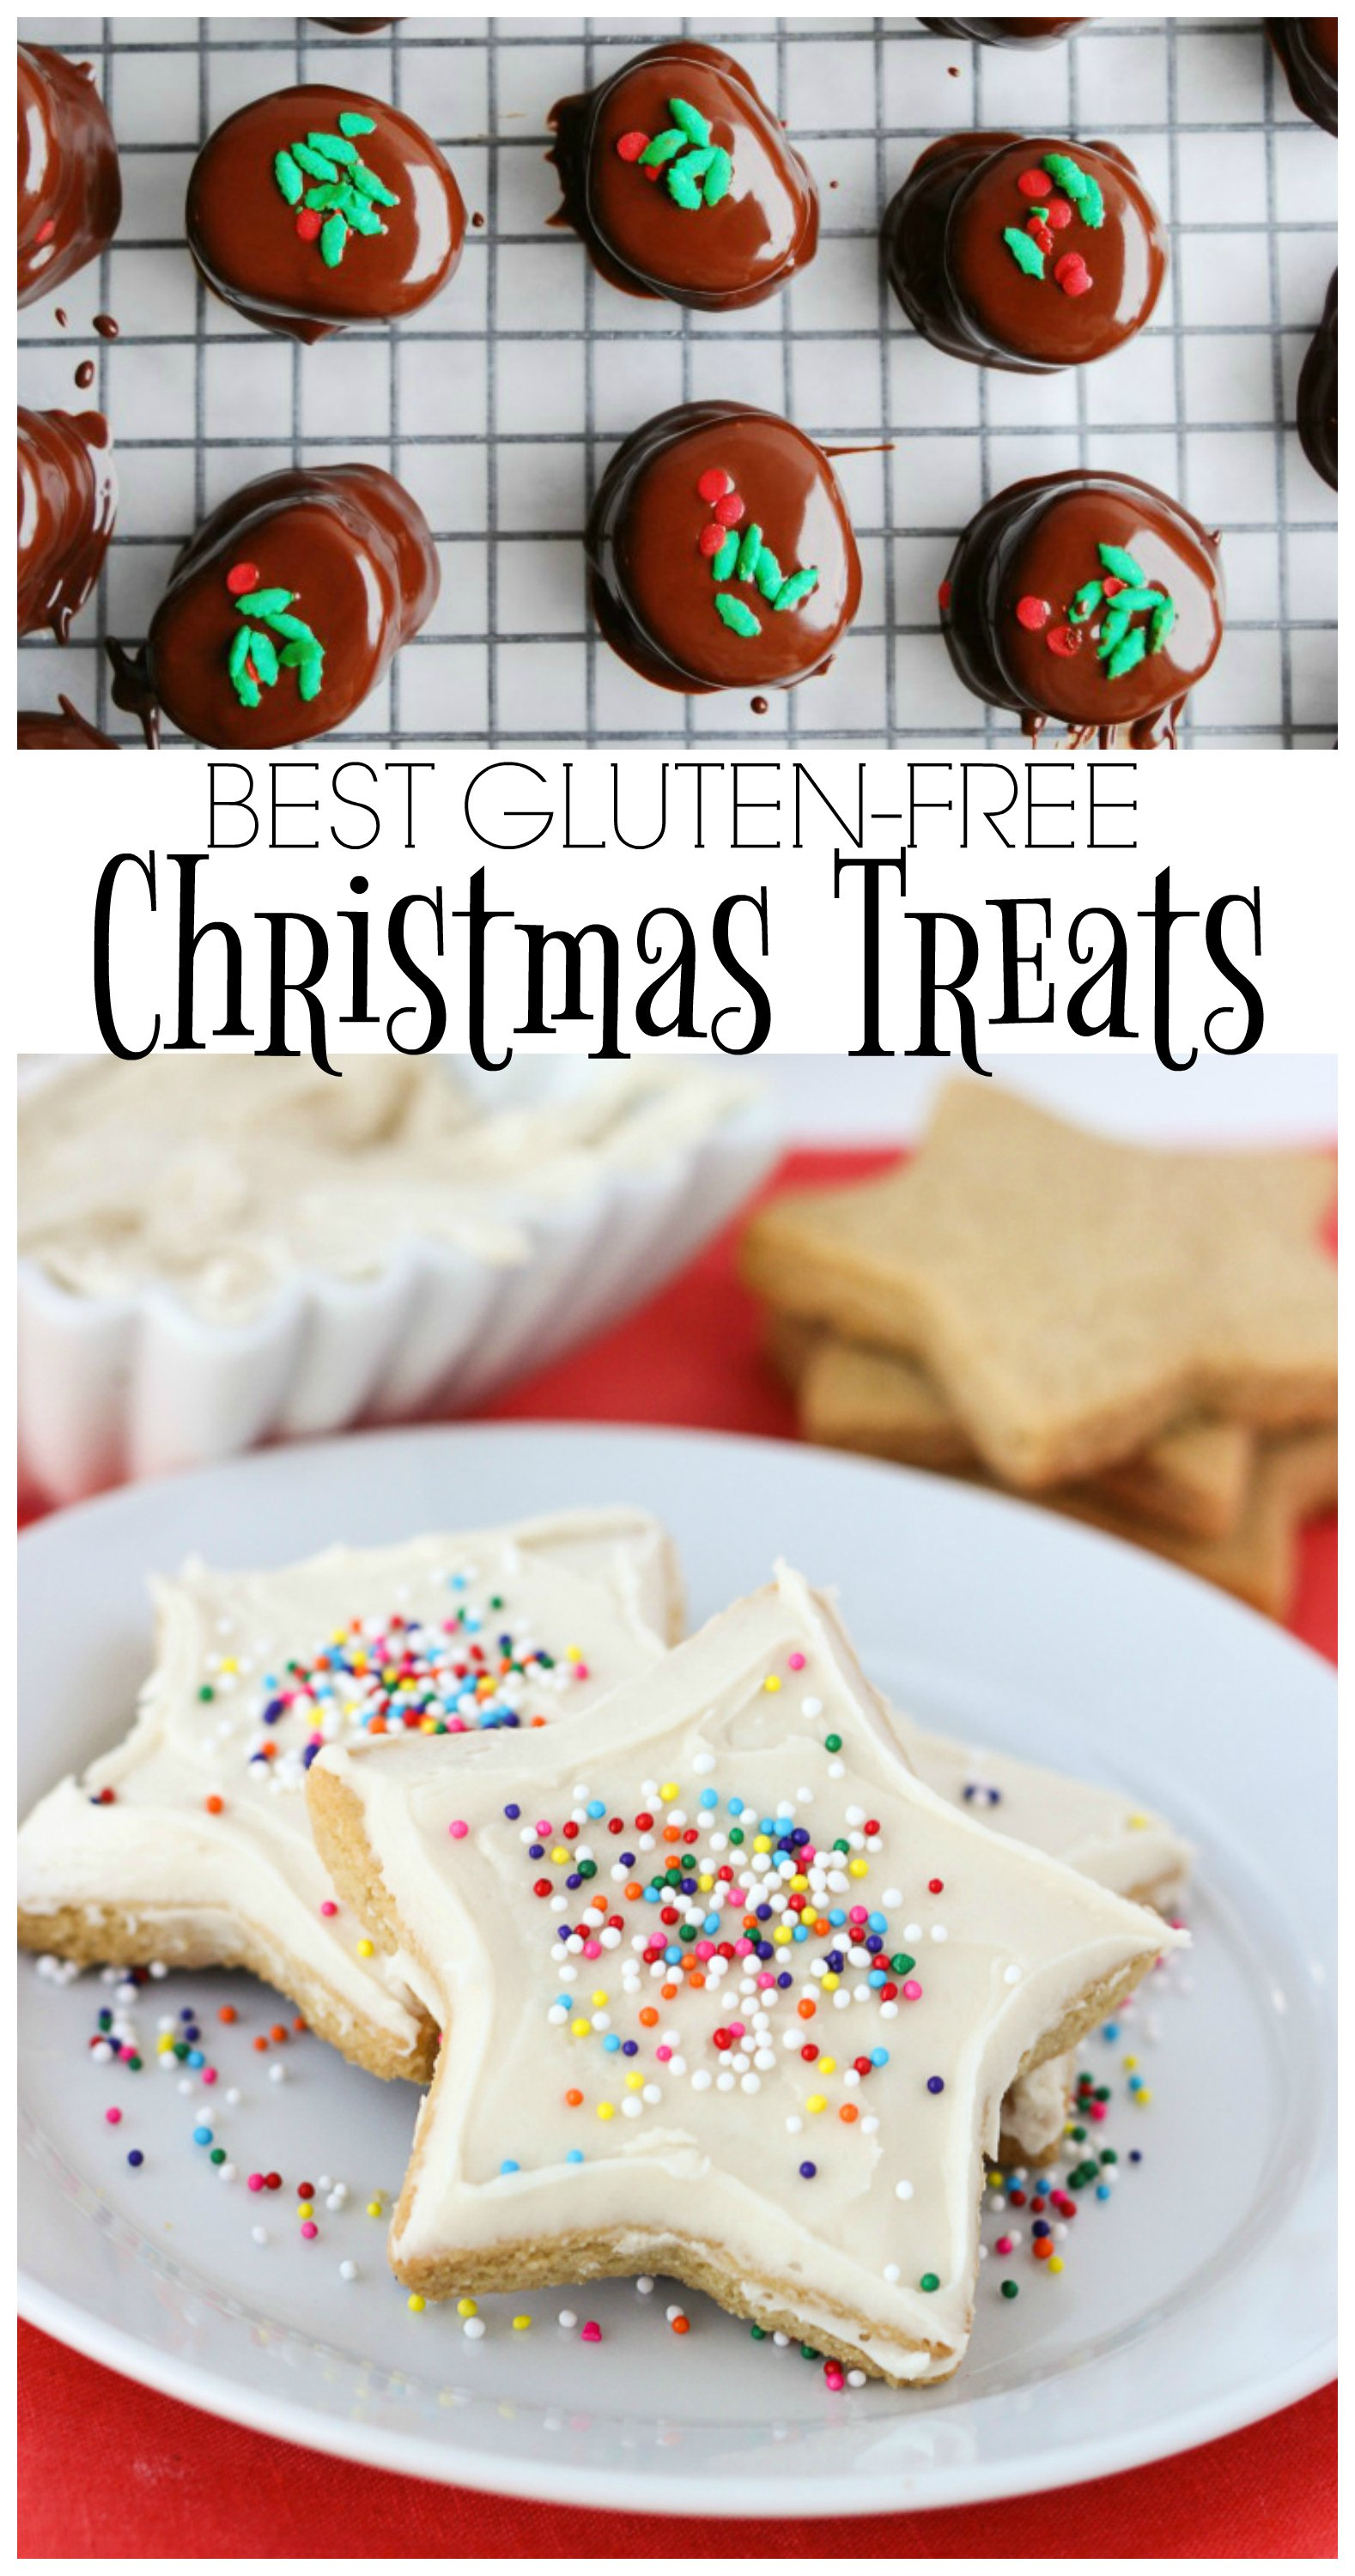 These are the BEST gluten-free Christmas treats from around the web. Everyone will love them! | gluten-free christmas treats | gluten-free christmas cookies | gluten-free christmas sweets | gluten-free christmas treats | gluten-free holiday treats | gluten-free holiday sweets || This Vivacious Life #glutenfreechristmas #glutenfreesweets #glutenfreetreats